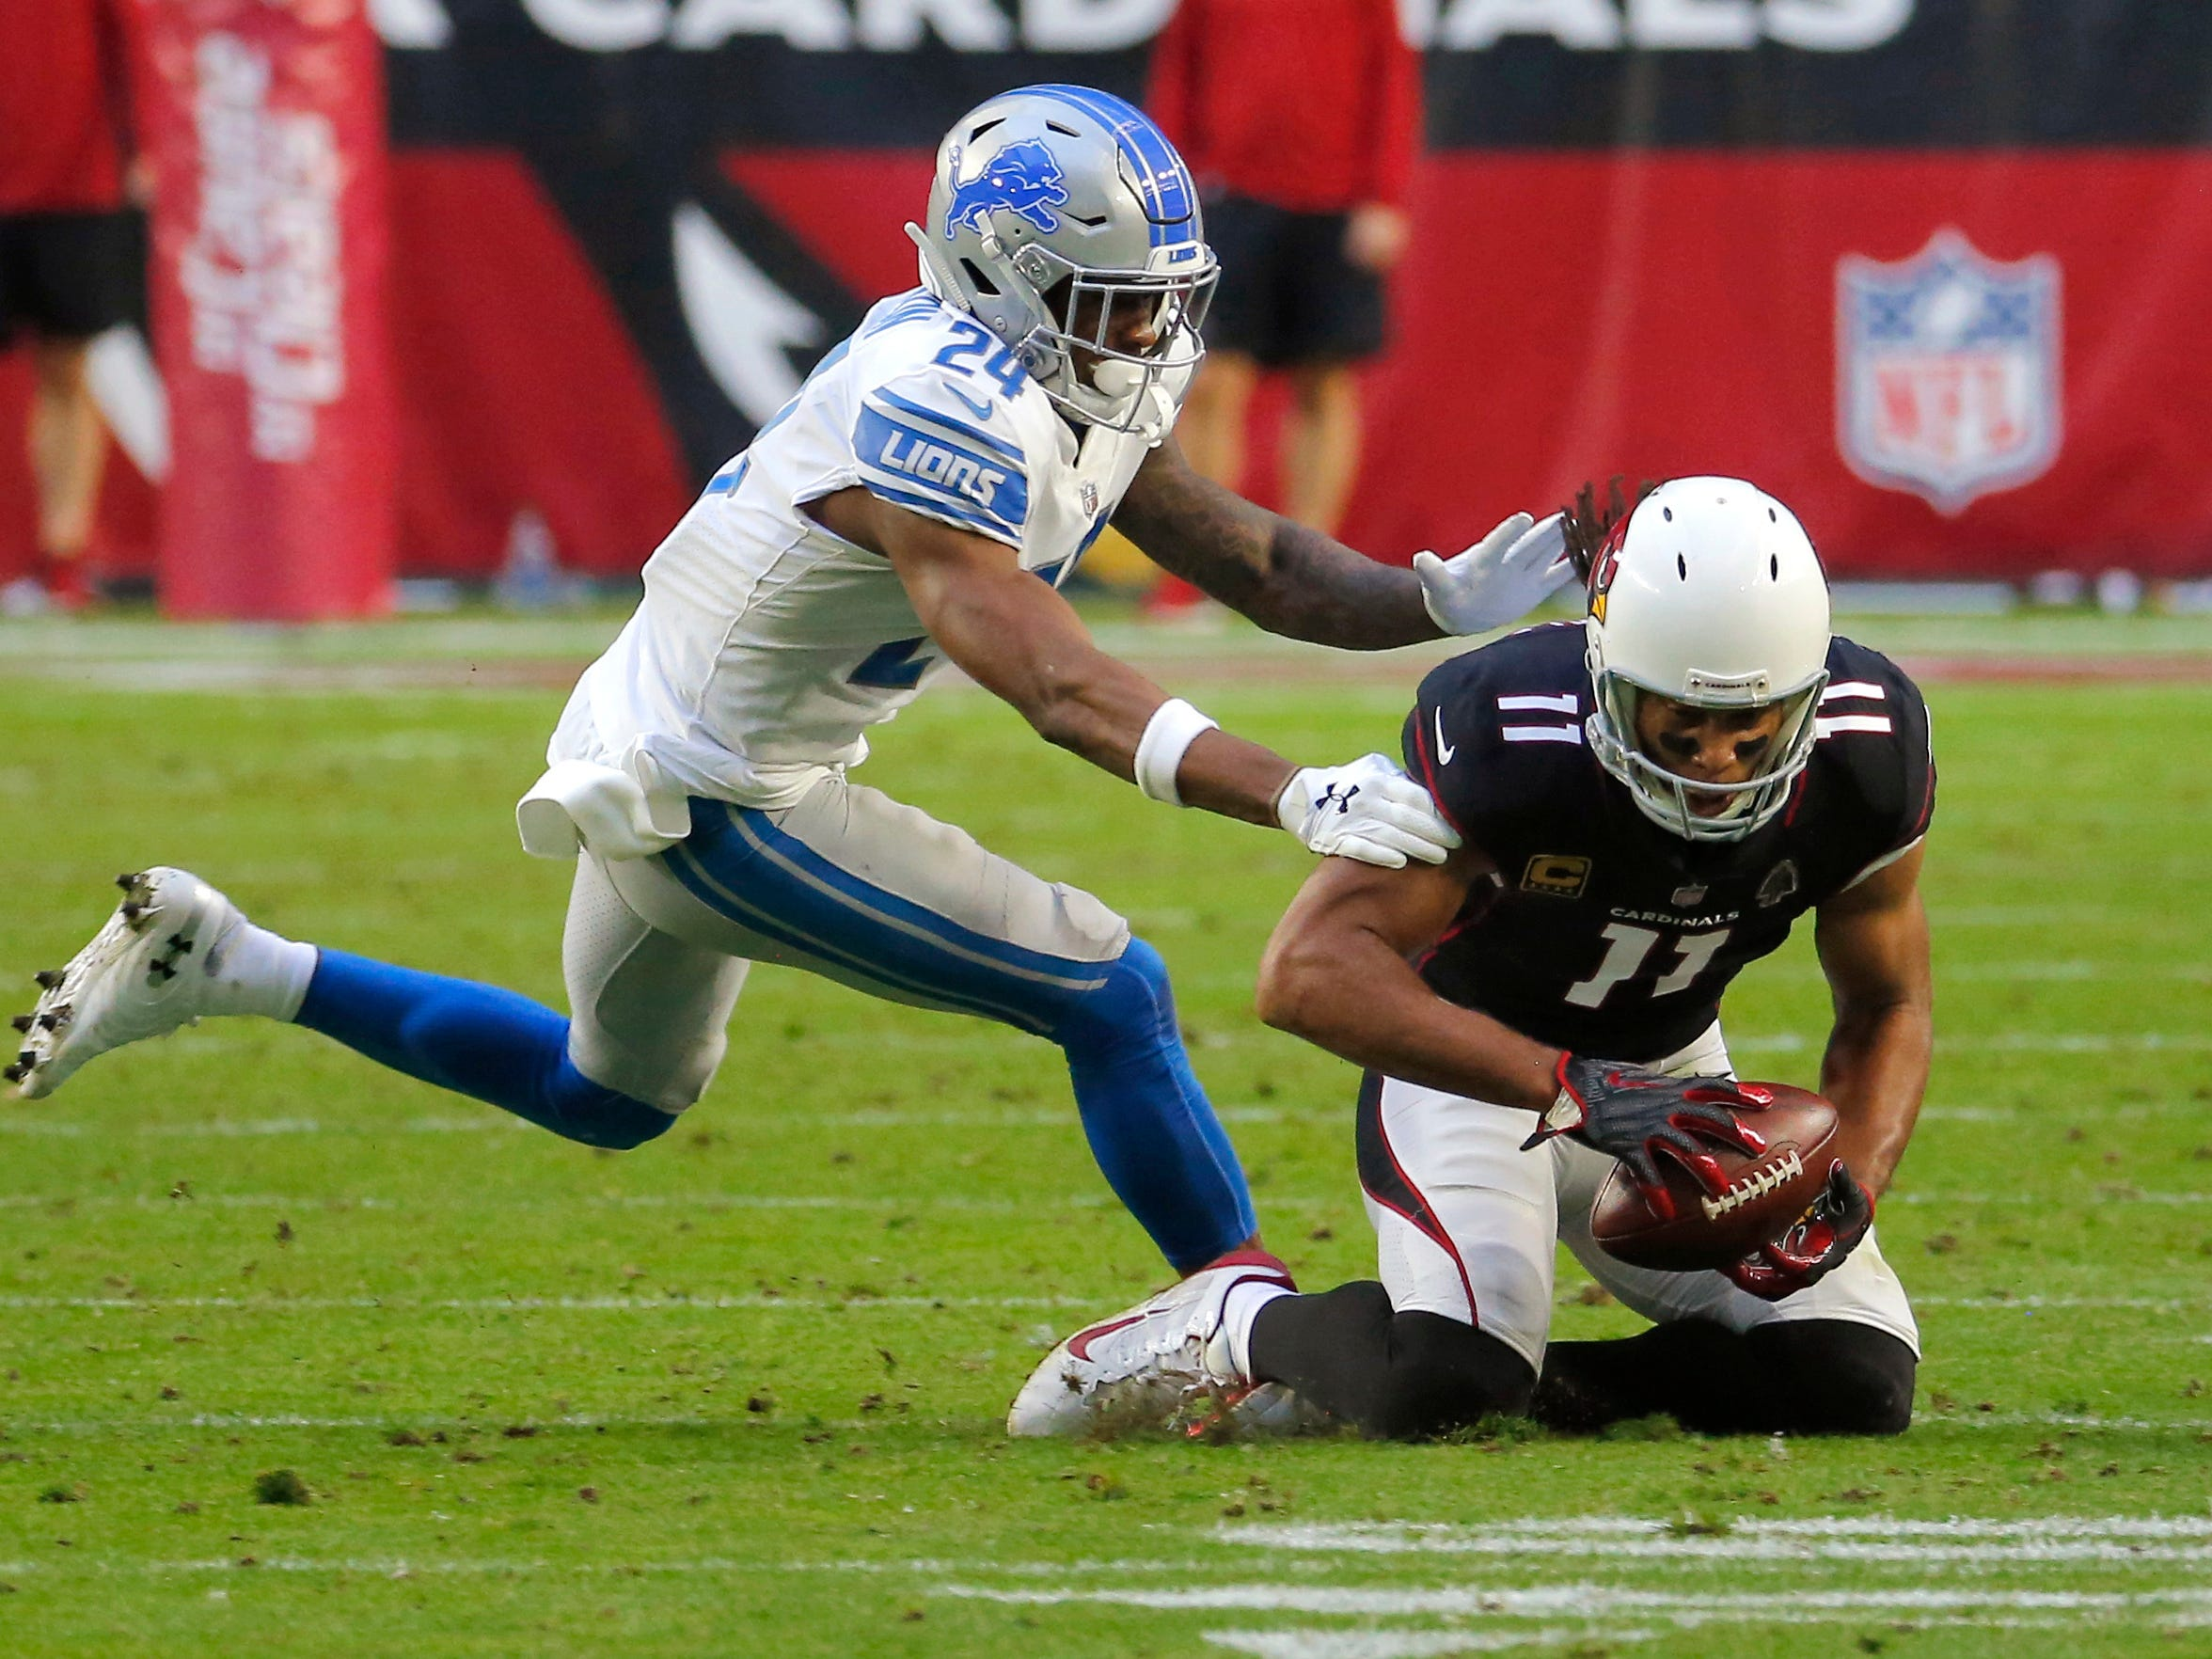 Cardinals wide receiver Larry Fitzgerald makes his 1,282nd career catch as Lions cornerback Nevin Lawson defends during the second half of the Lions' 17-3 win on Sunday, Dec. 9, 2018, in Glendale, Ariz.